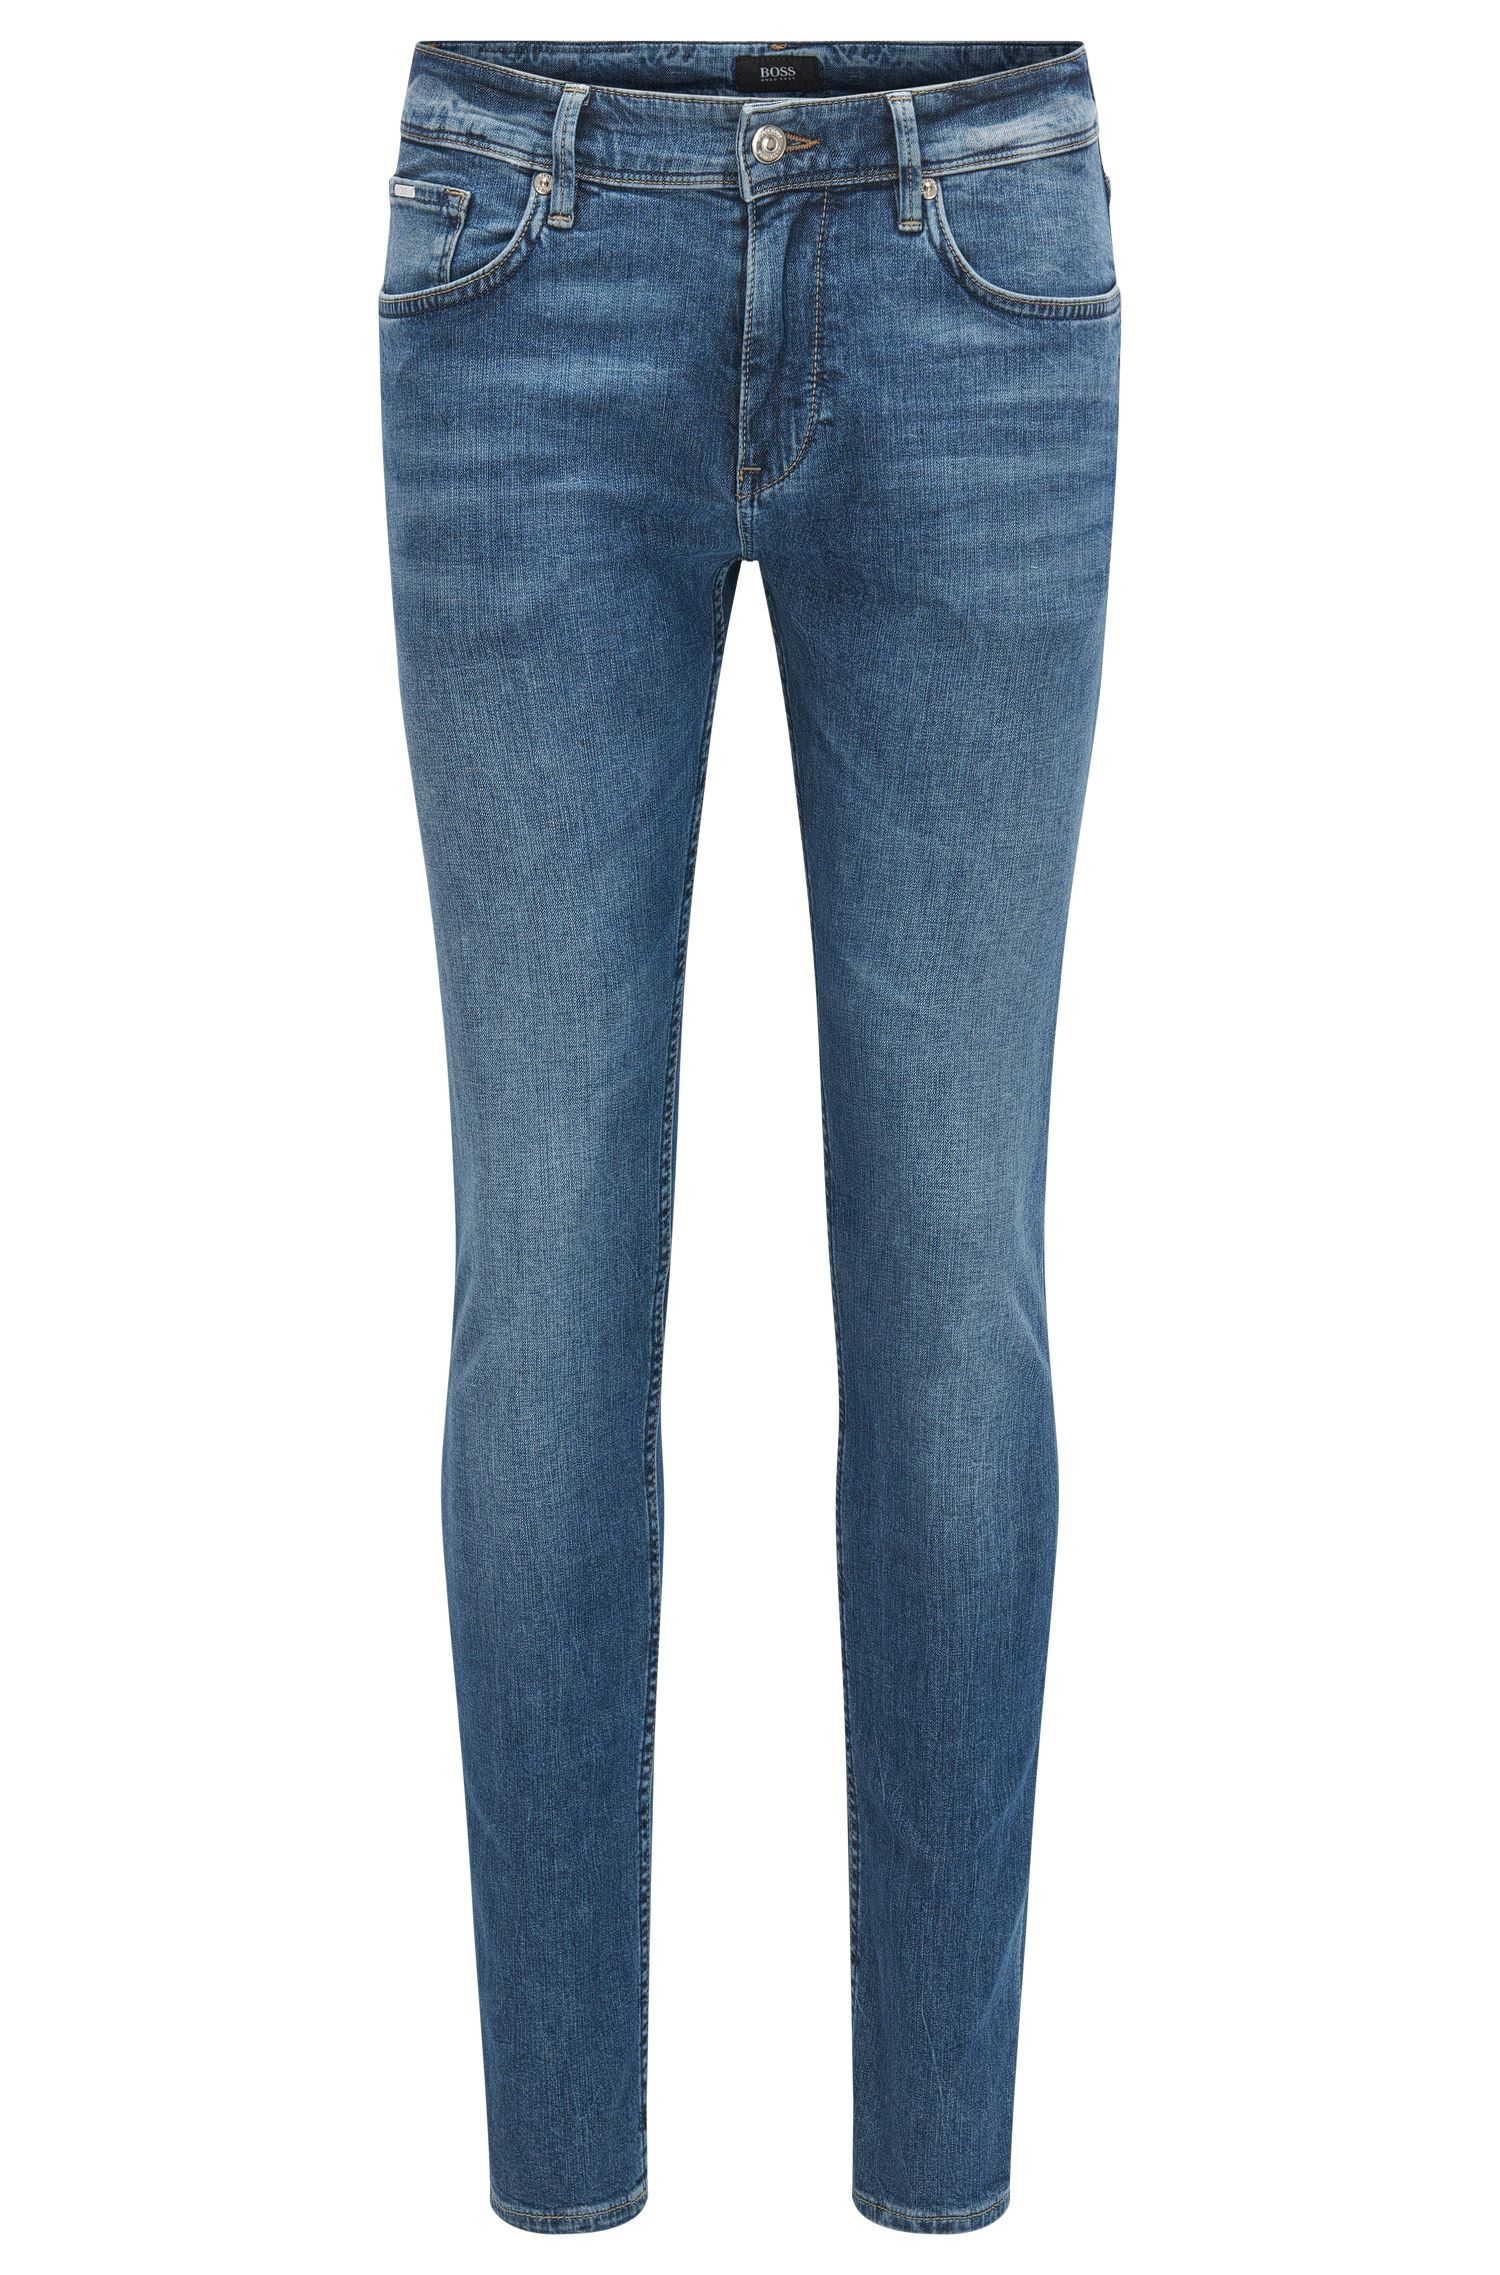 9 oz Stretch Cotton Jeans, Extra Slim Fit | Charleston